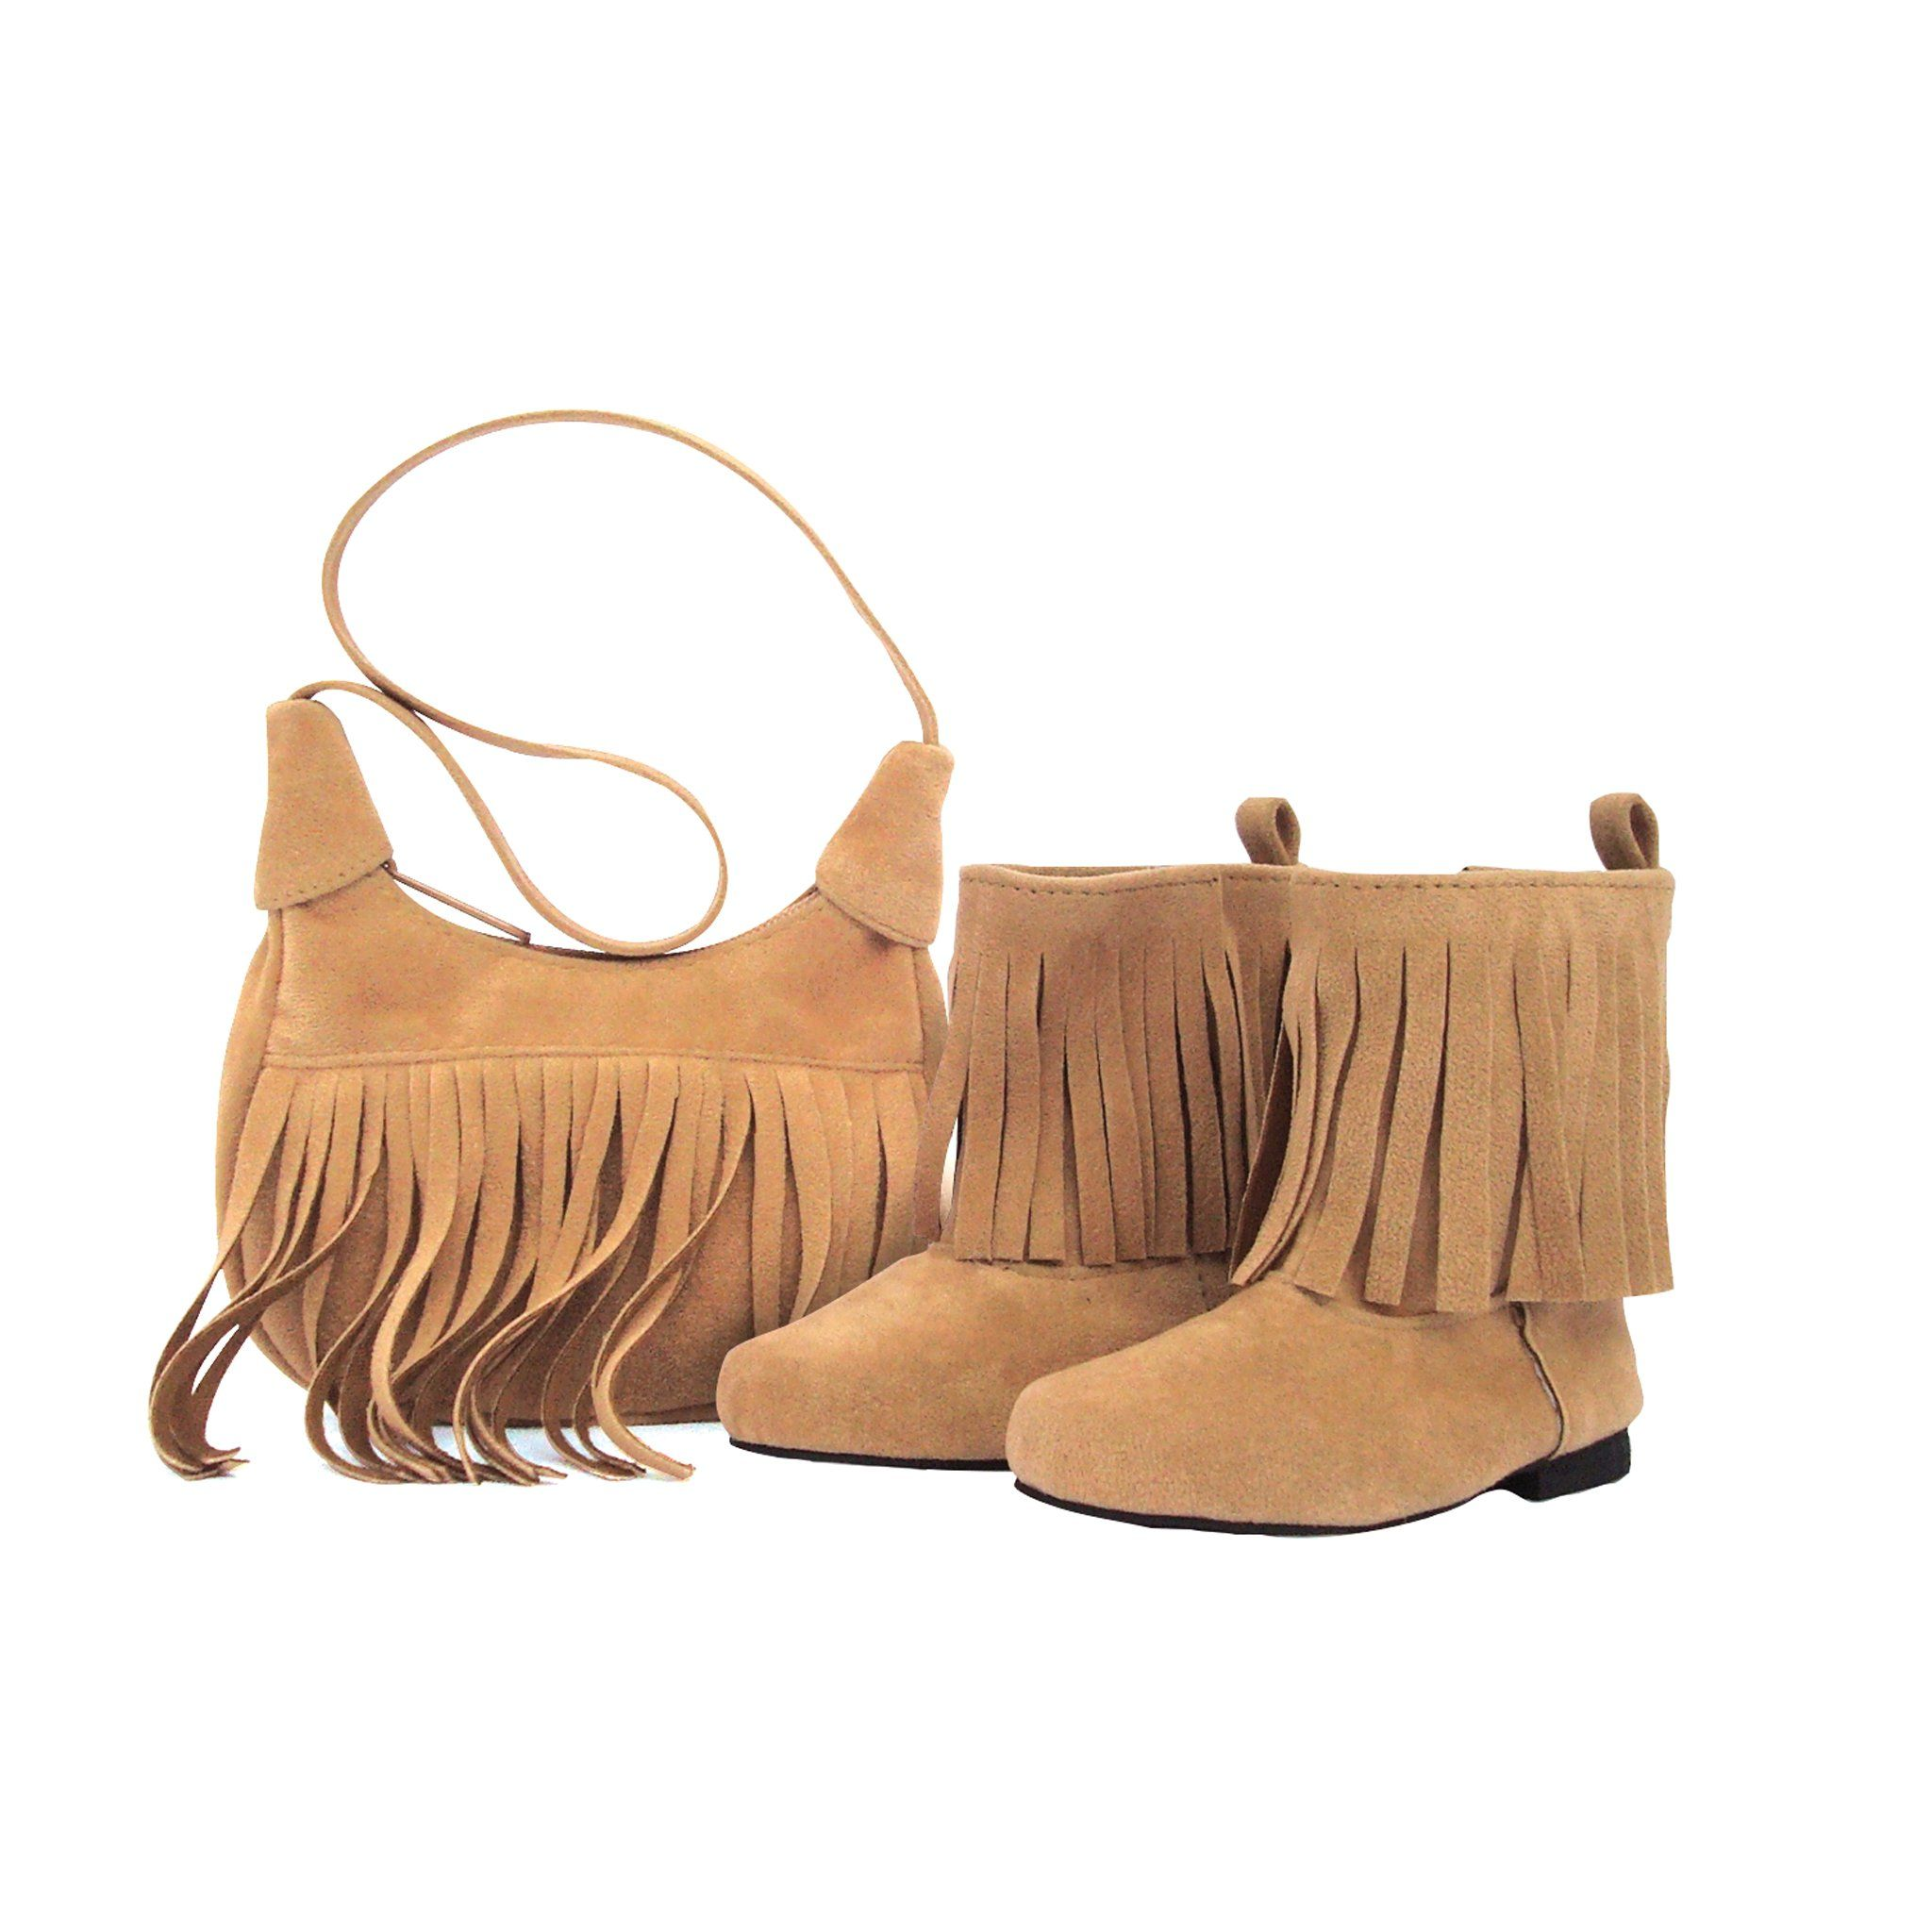 Western suede-like fringed purse and boot accessory set fits all 18 inch dolls.